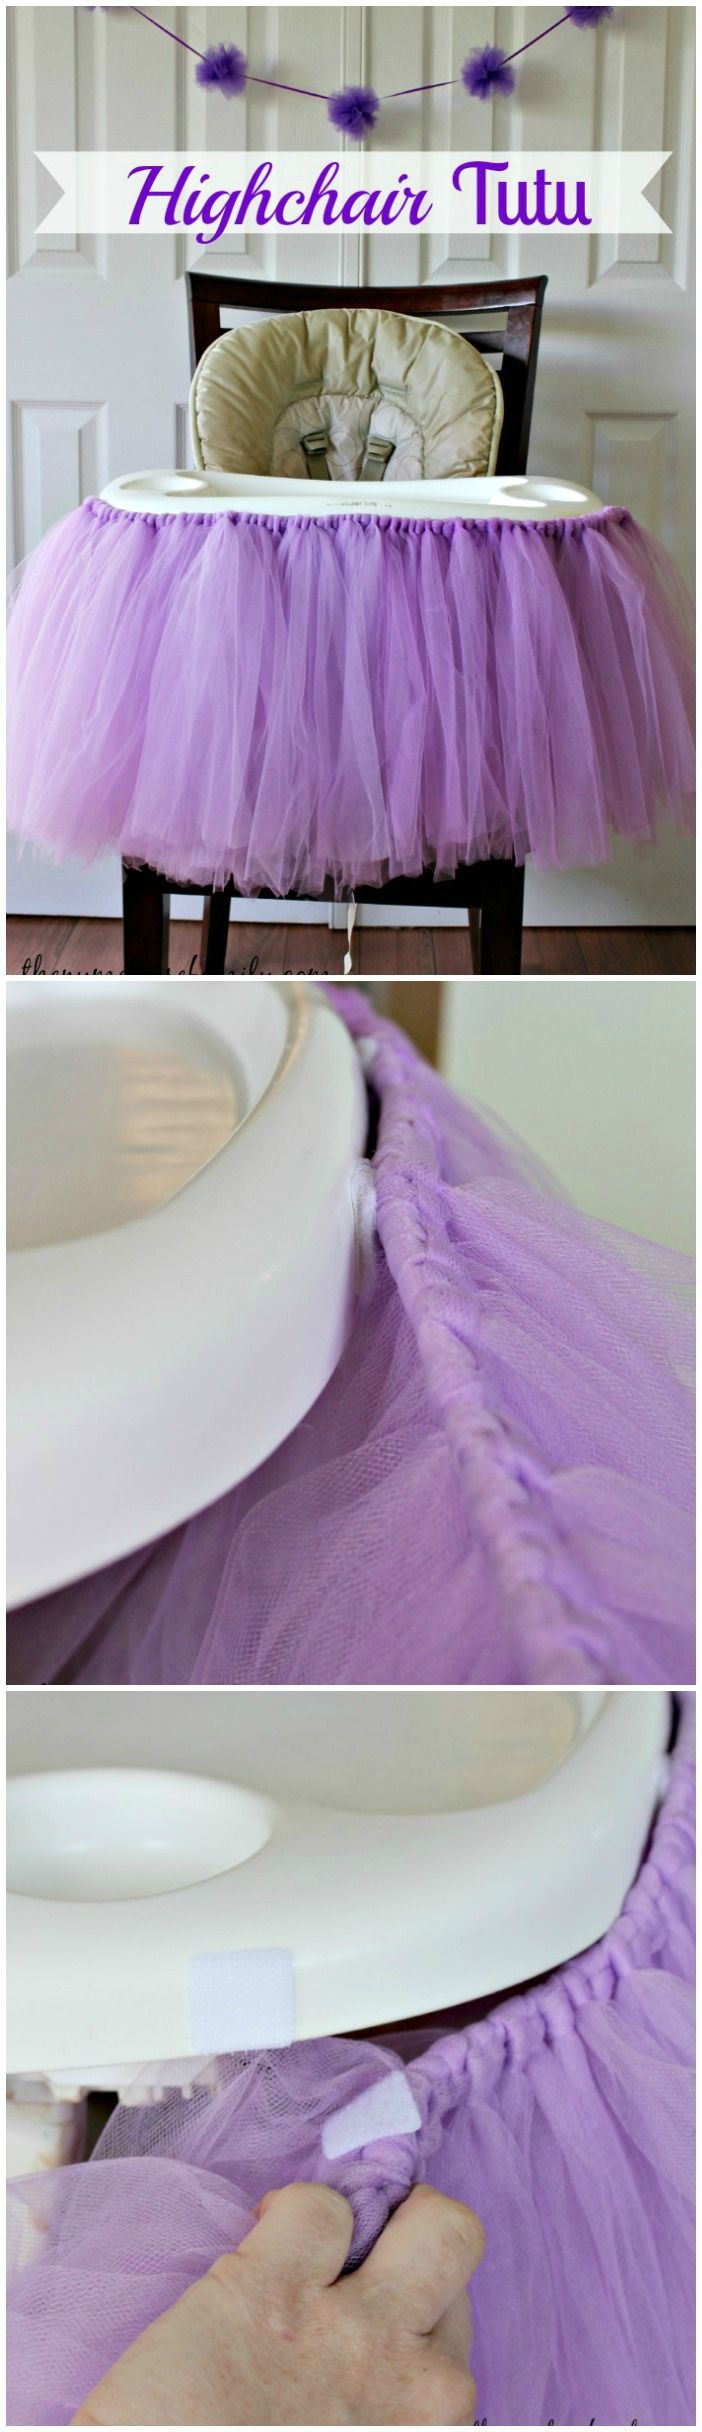 No Sew Highchair Tutu perfect for 1st Birthday parties! #firstbirthday: Safe, 2Nd Birthday Parties, Highchair Tutu, 1St Bday, High Chair Tutu, 1St Birthday, First Birthday, Baby Girls, High Chairs Tutu